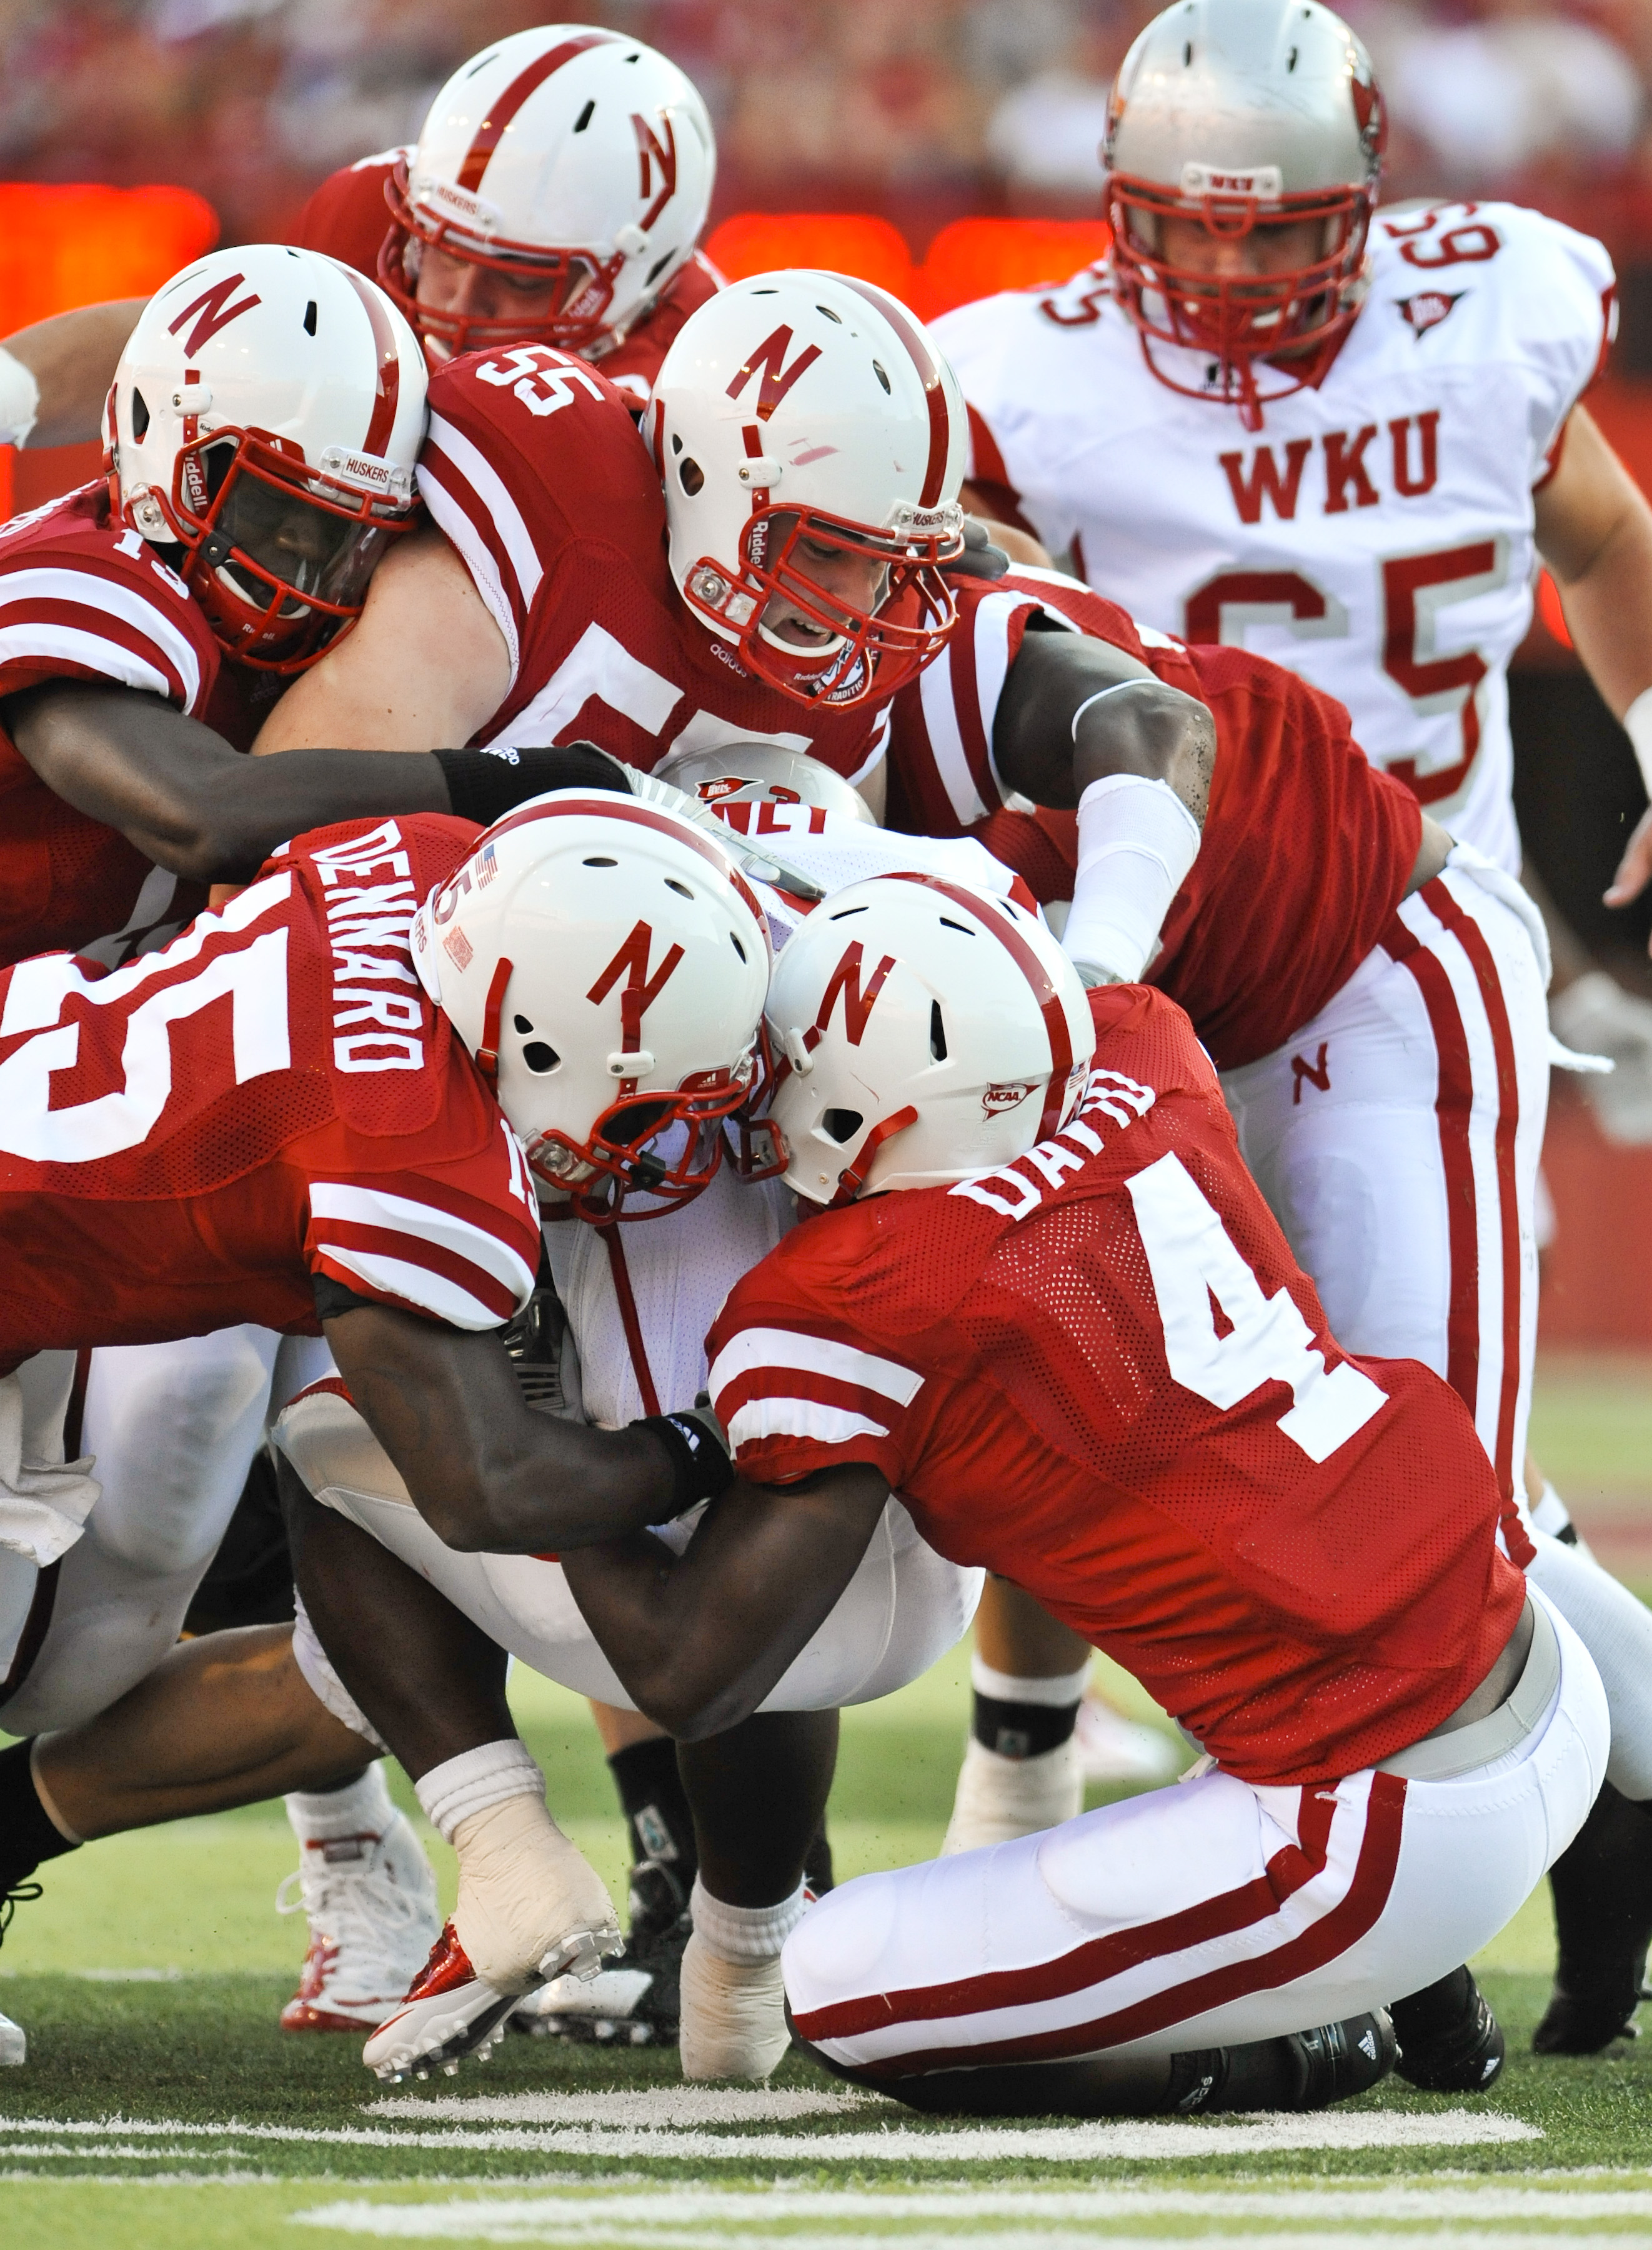 LINCOLN, NE - SEPTEMBER 04:  The Nebraska Cornhuskers  defense swarms Bobby Rainey of the Western Kentucky Hilltoppers during the first half of their game at Memorial Stadium on September 4, 2010 in Lincoln, Nebraska. Nebraska defeated Western Kentucky 49